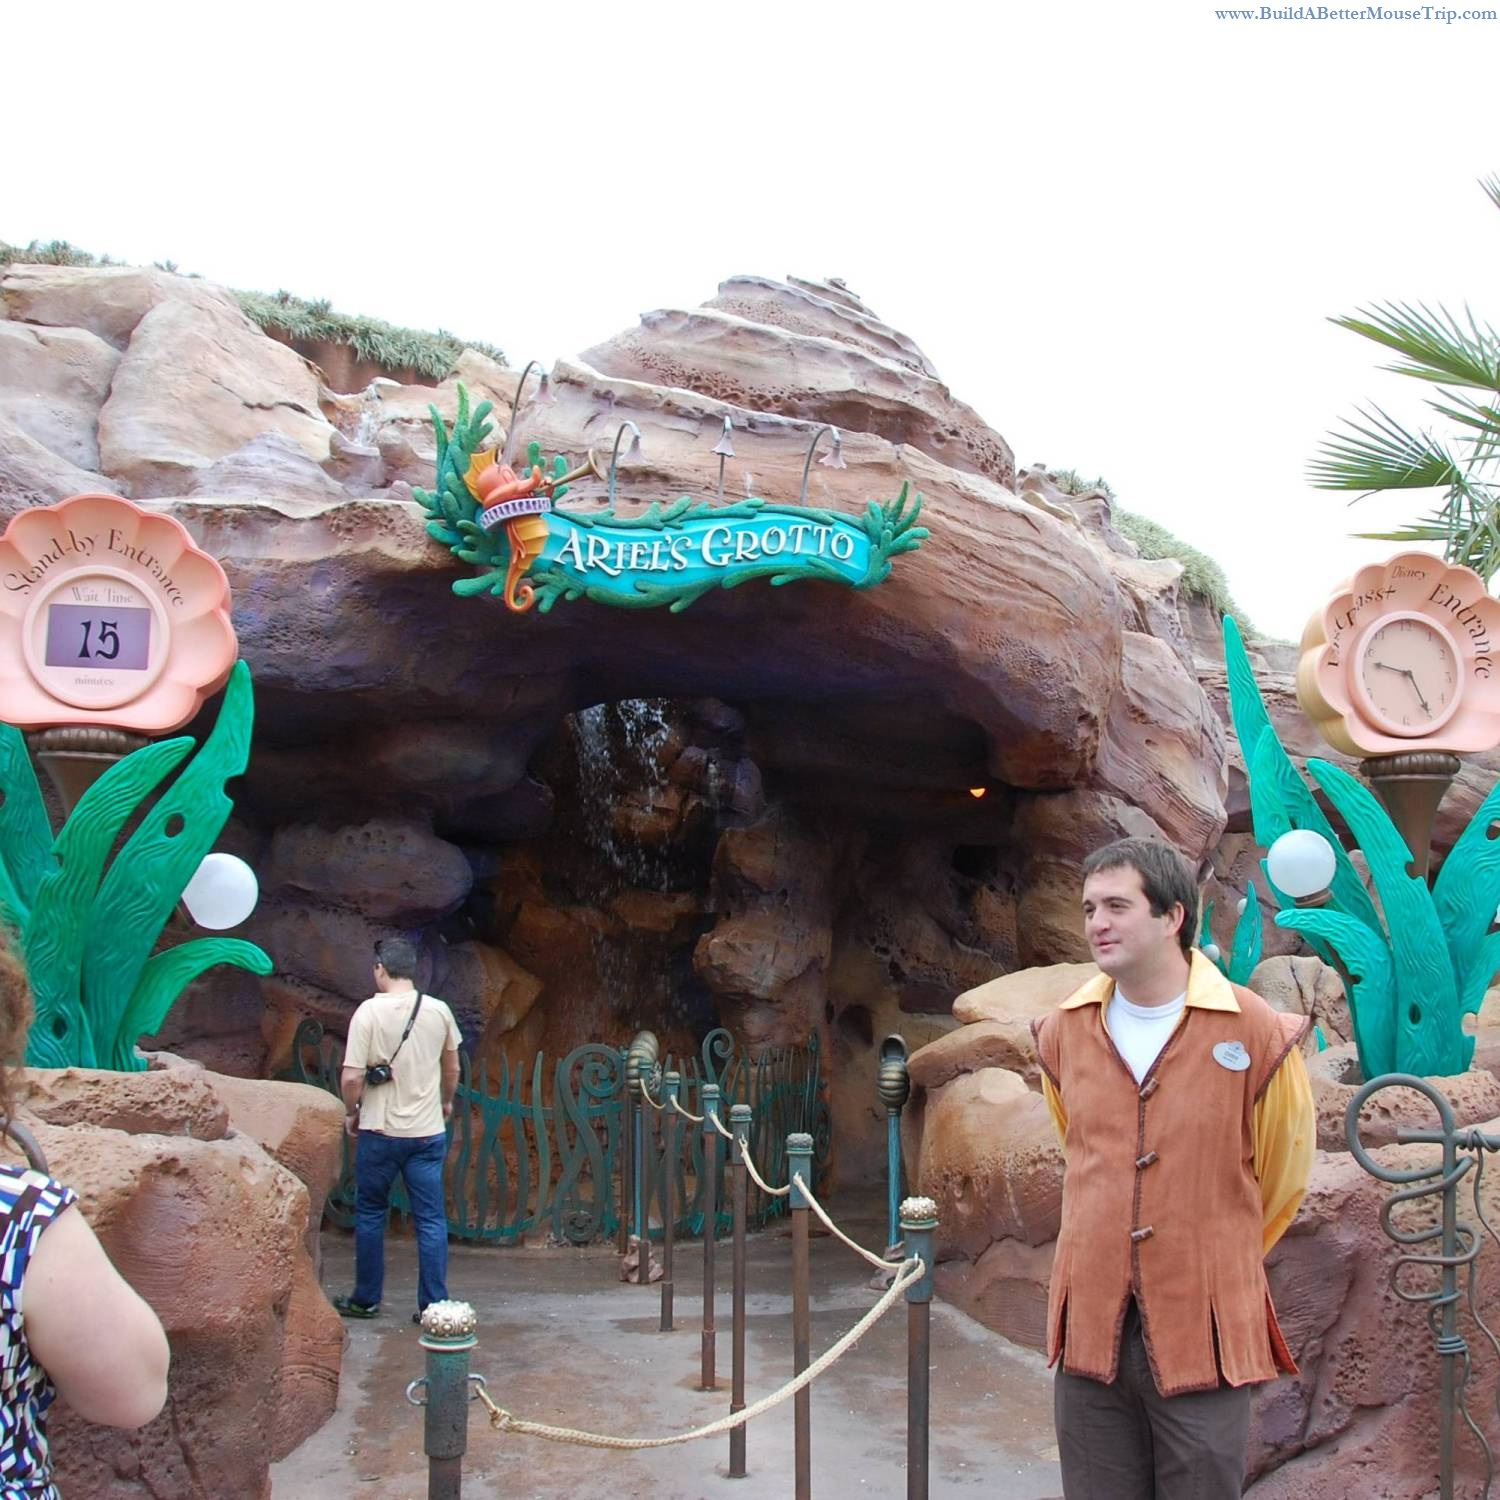 You can have your photo taken with the Little Mermaid at Ariel's Grotto in Fantasyland in the Magic Kingdom at Disney World. .